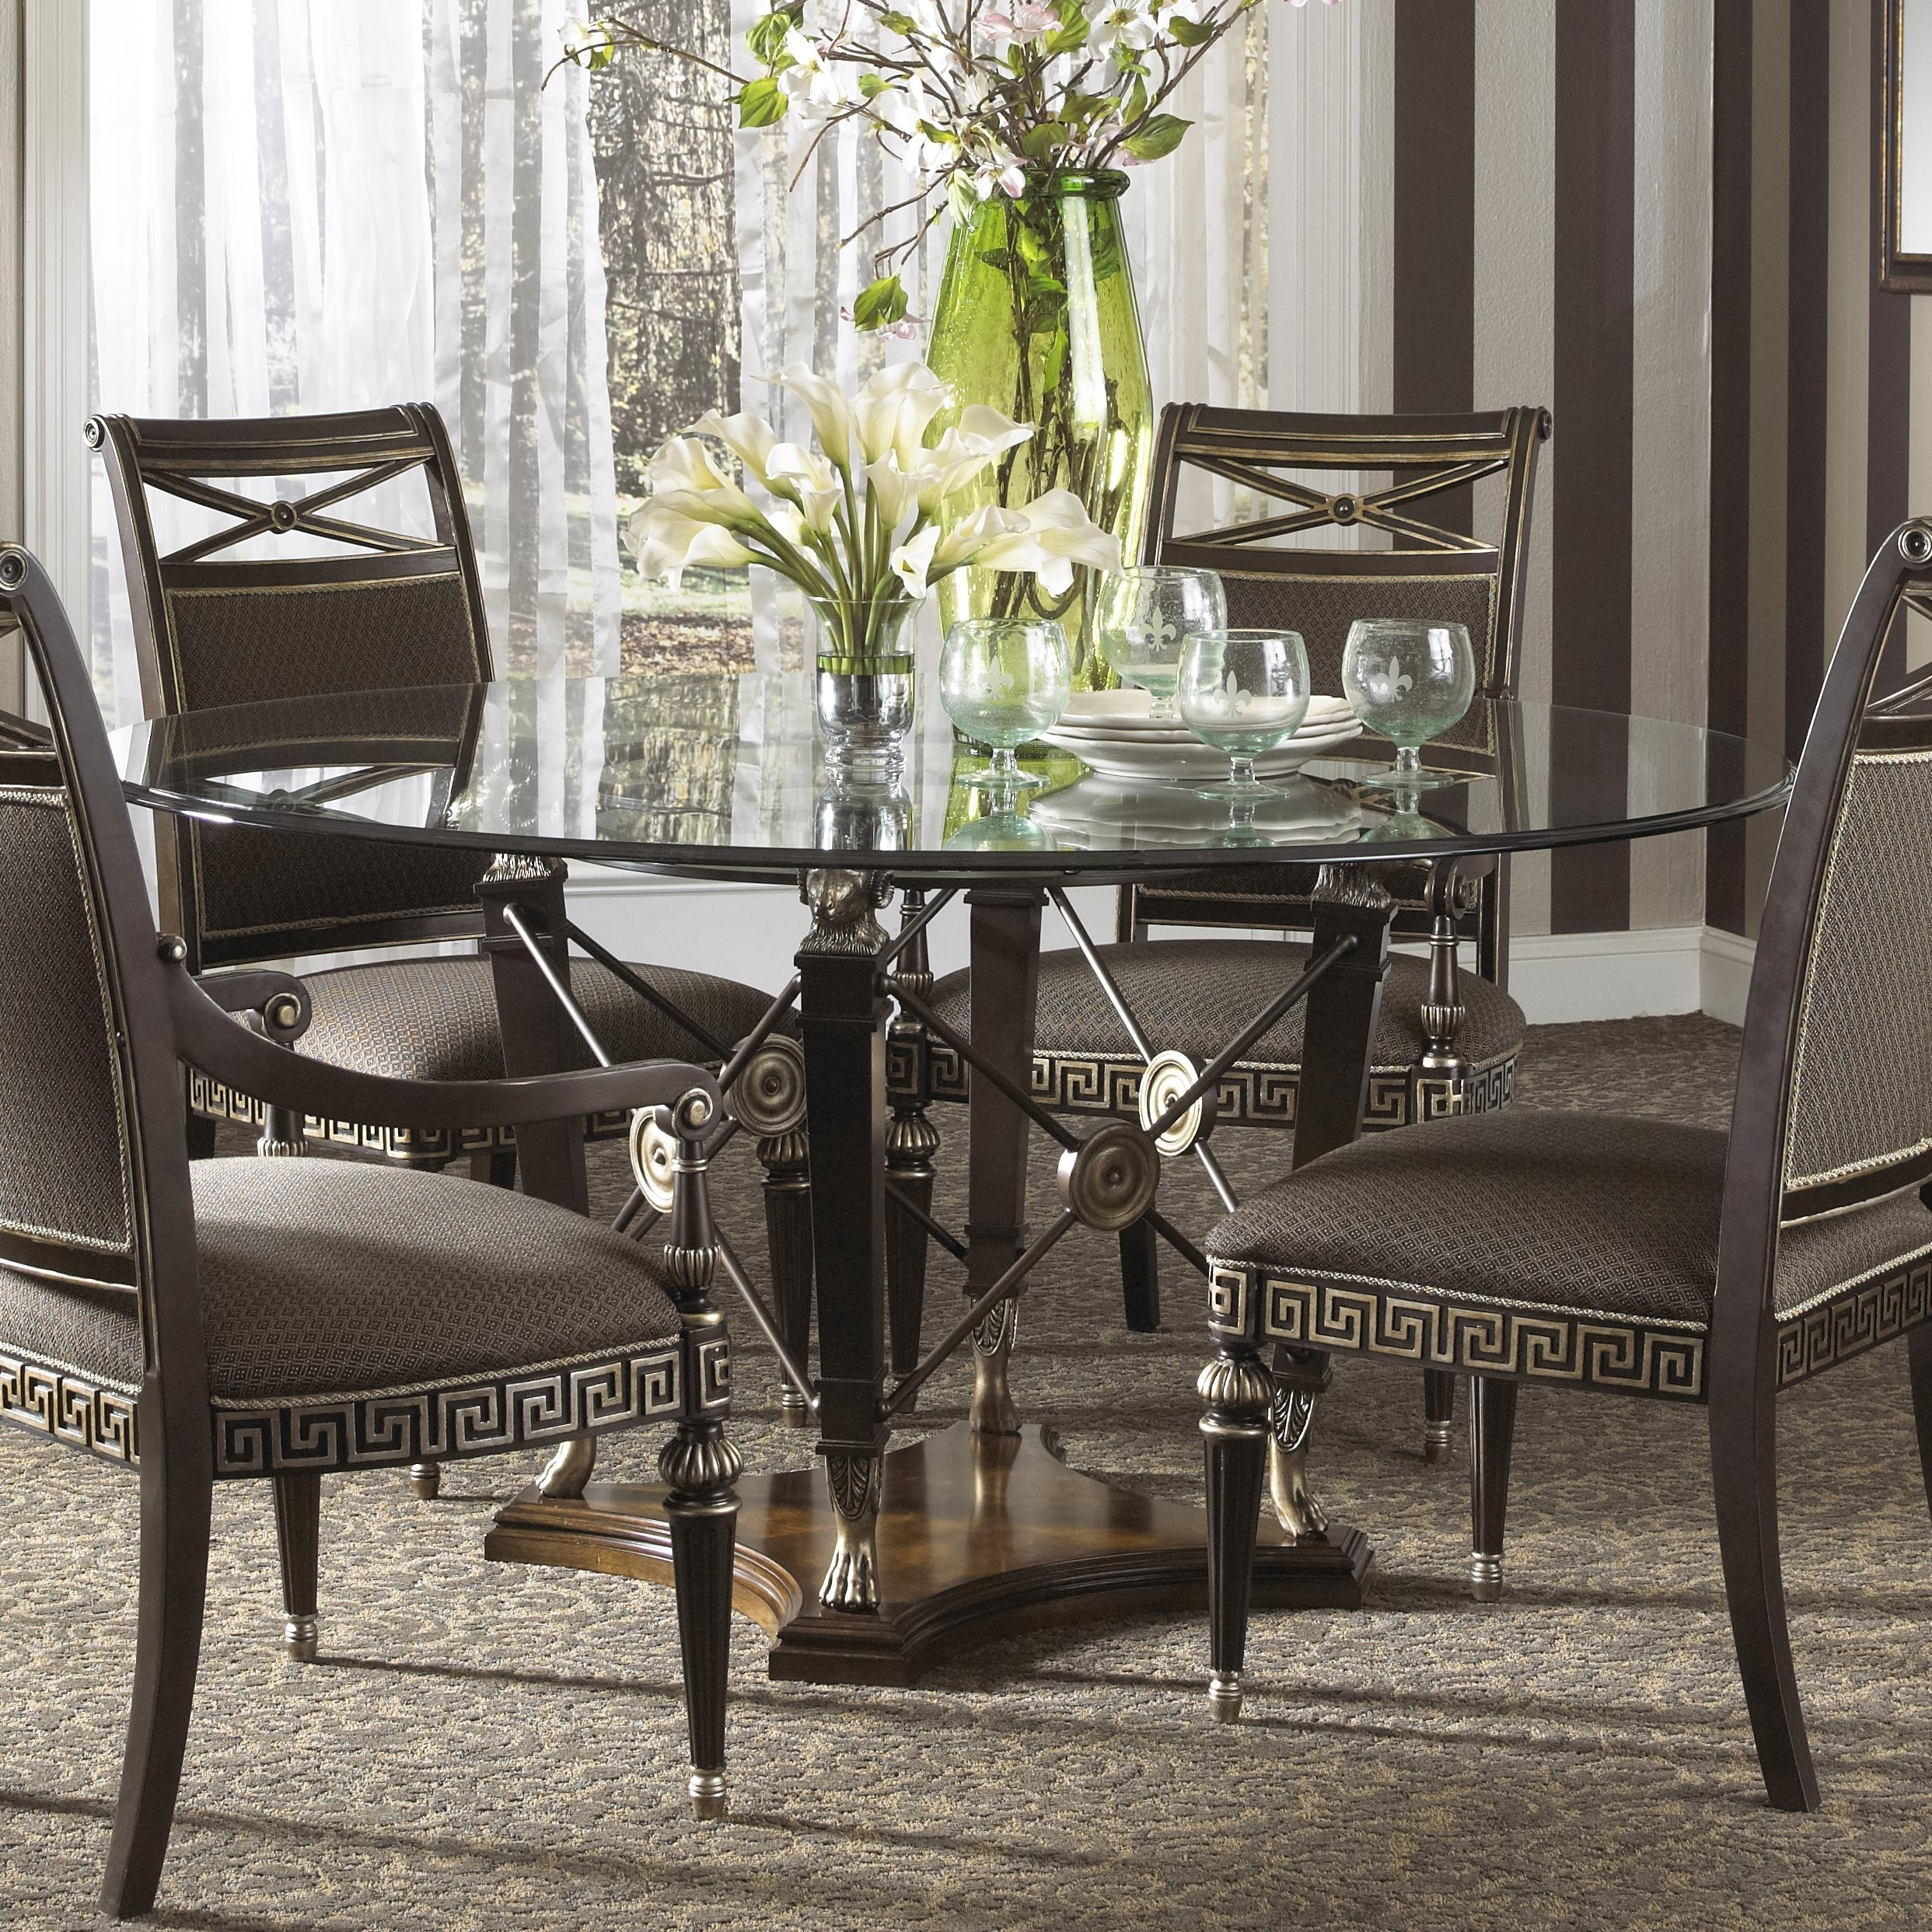 2017 Pedestal Dining Tables And Chairs With Regard To Tempered Gorgeous Chairs Decor Diameter Set Round Below Seats (View 1 of 25)